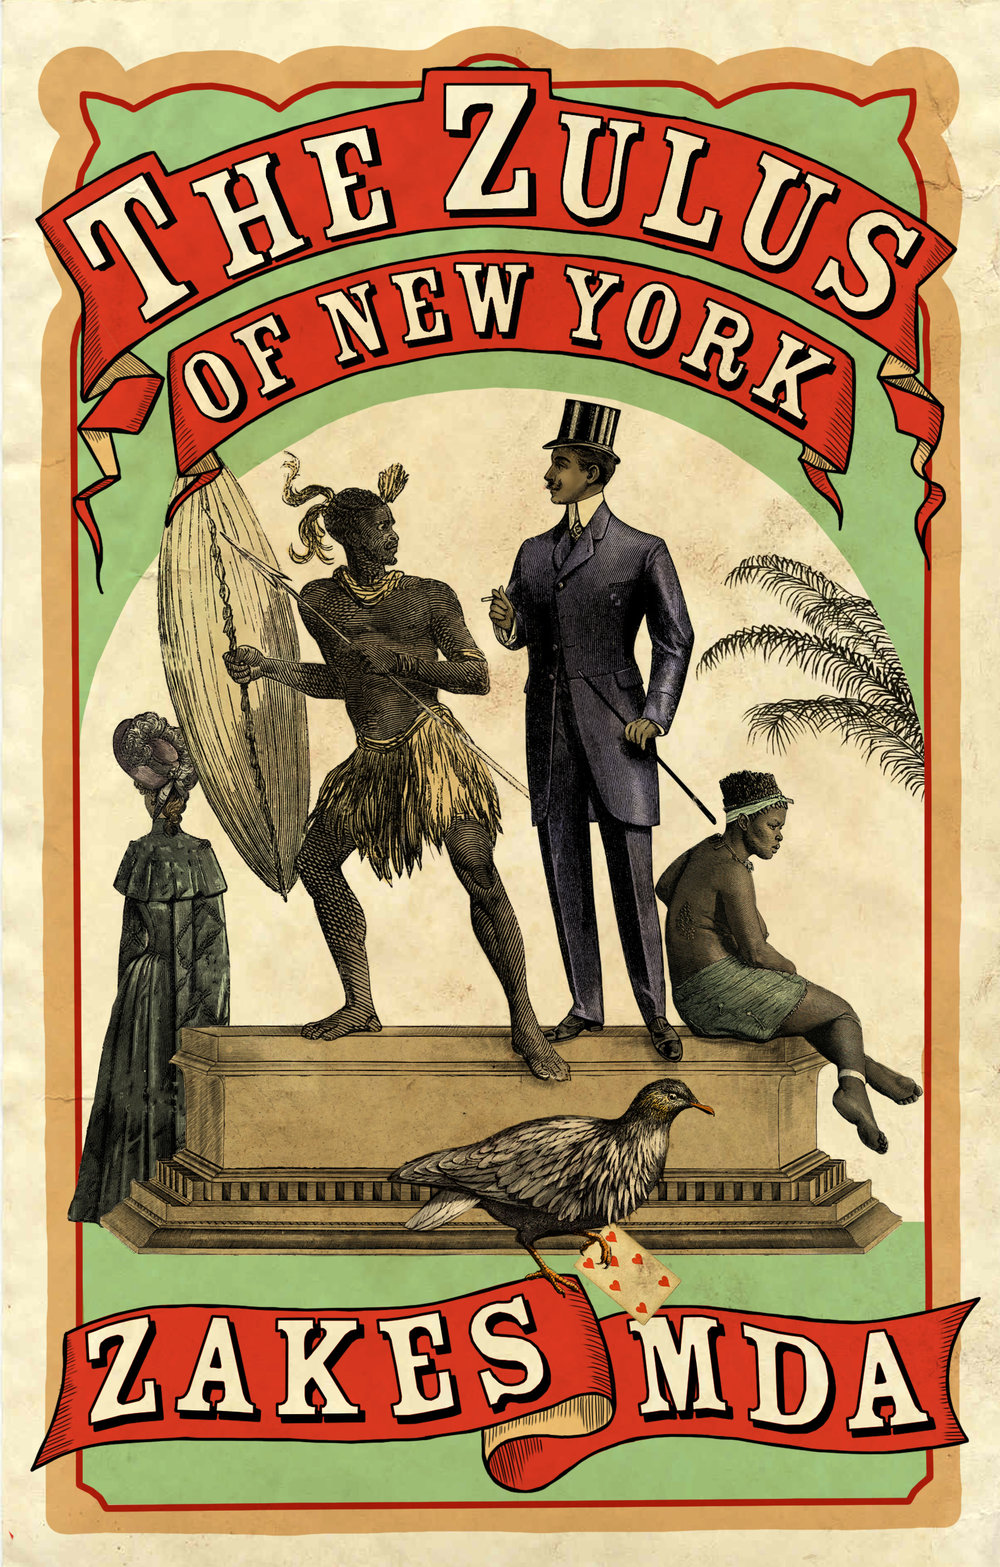 THE ZULUS OF NEW YORK  Literary Fiction, Umuzi, March 2019  The Great Farini would stride on to the stage and announce, 'Ladies and gentlemen, and now for the highlight of the day, the ferocious Zulus.'  The impresario Farini introduced Em-Pee and his troupe to his kind of show business, and now they must earn their bread. In 1885 in a bustling New York City, they are the performers who know the true Zulu dances, while all around them fraudsters perform silly jigs.  Reports on the Anglo-Zulu War portrayed King Cetshwayo as infamous, and audiences in London and New York flock to see his kin. What the gawking spectators don't know is that Em-Pee once carried nothing but his spear and shield, when he had to flee his king.  But amid the city's squalid vaudeville acts appears a vision that leaves Em-Pee breathless: in a cage in Madison Square Park is Acol, a Dinka princess on display. For Em-Pee, it is love at first sight, though Acol is not free to love anyone back.